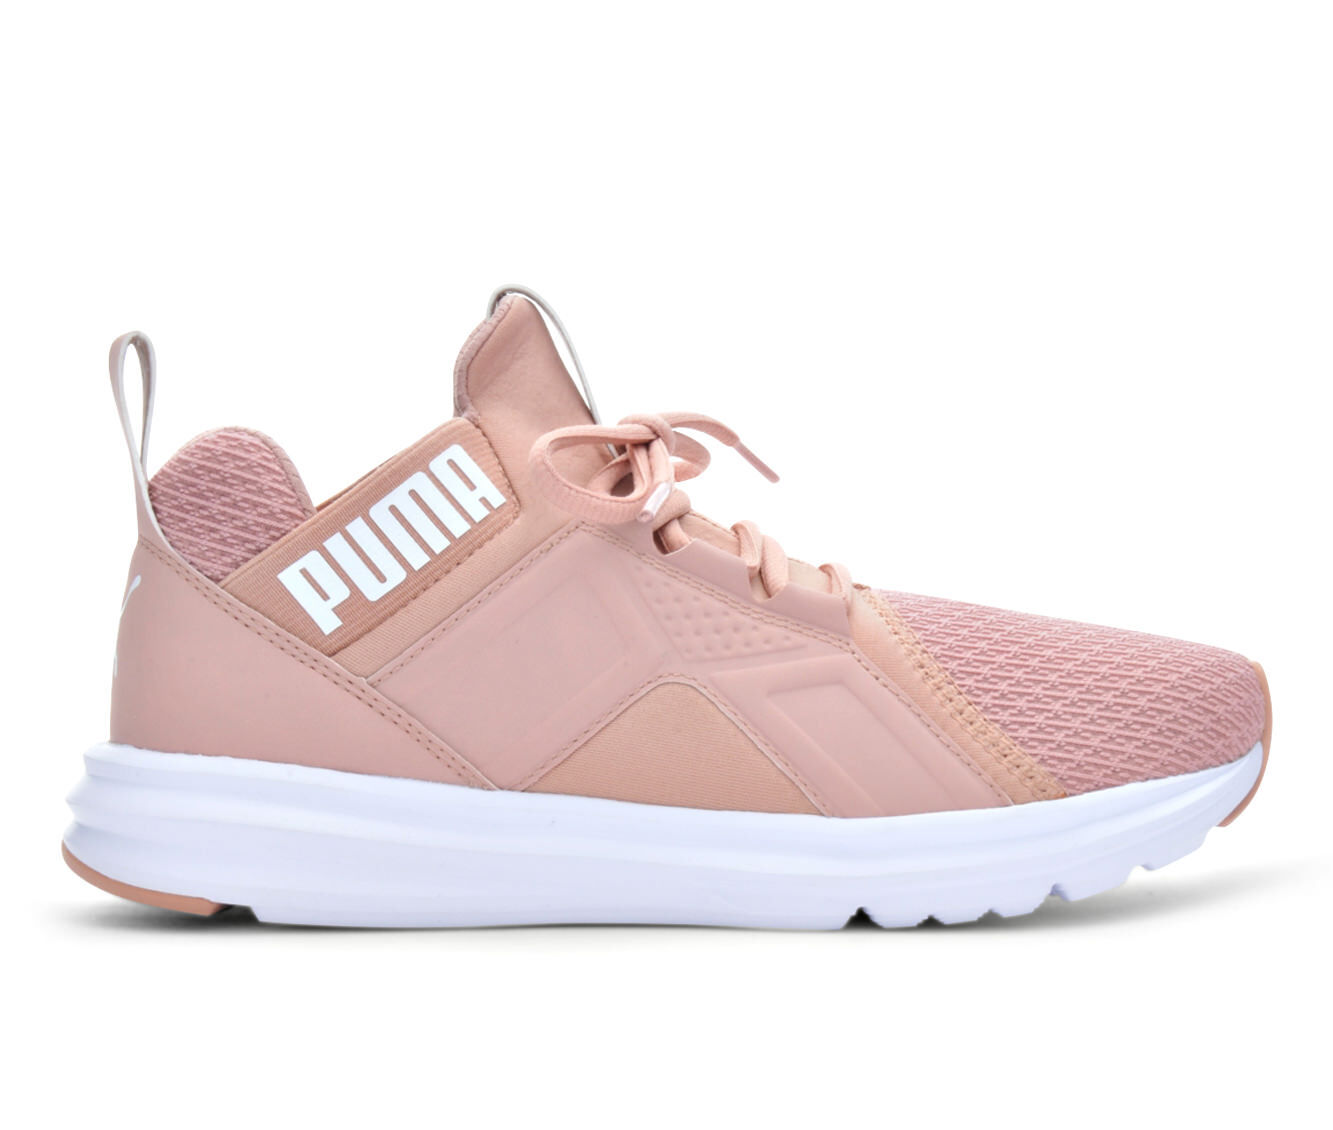 all styles Women's Puma Zenvo High Top Slip-On Sneakers Blush Pink